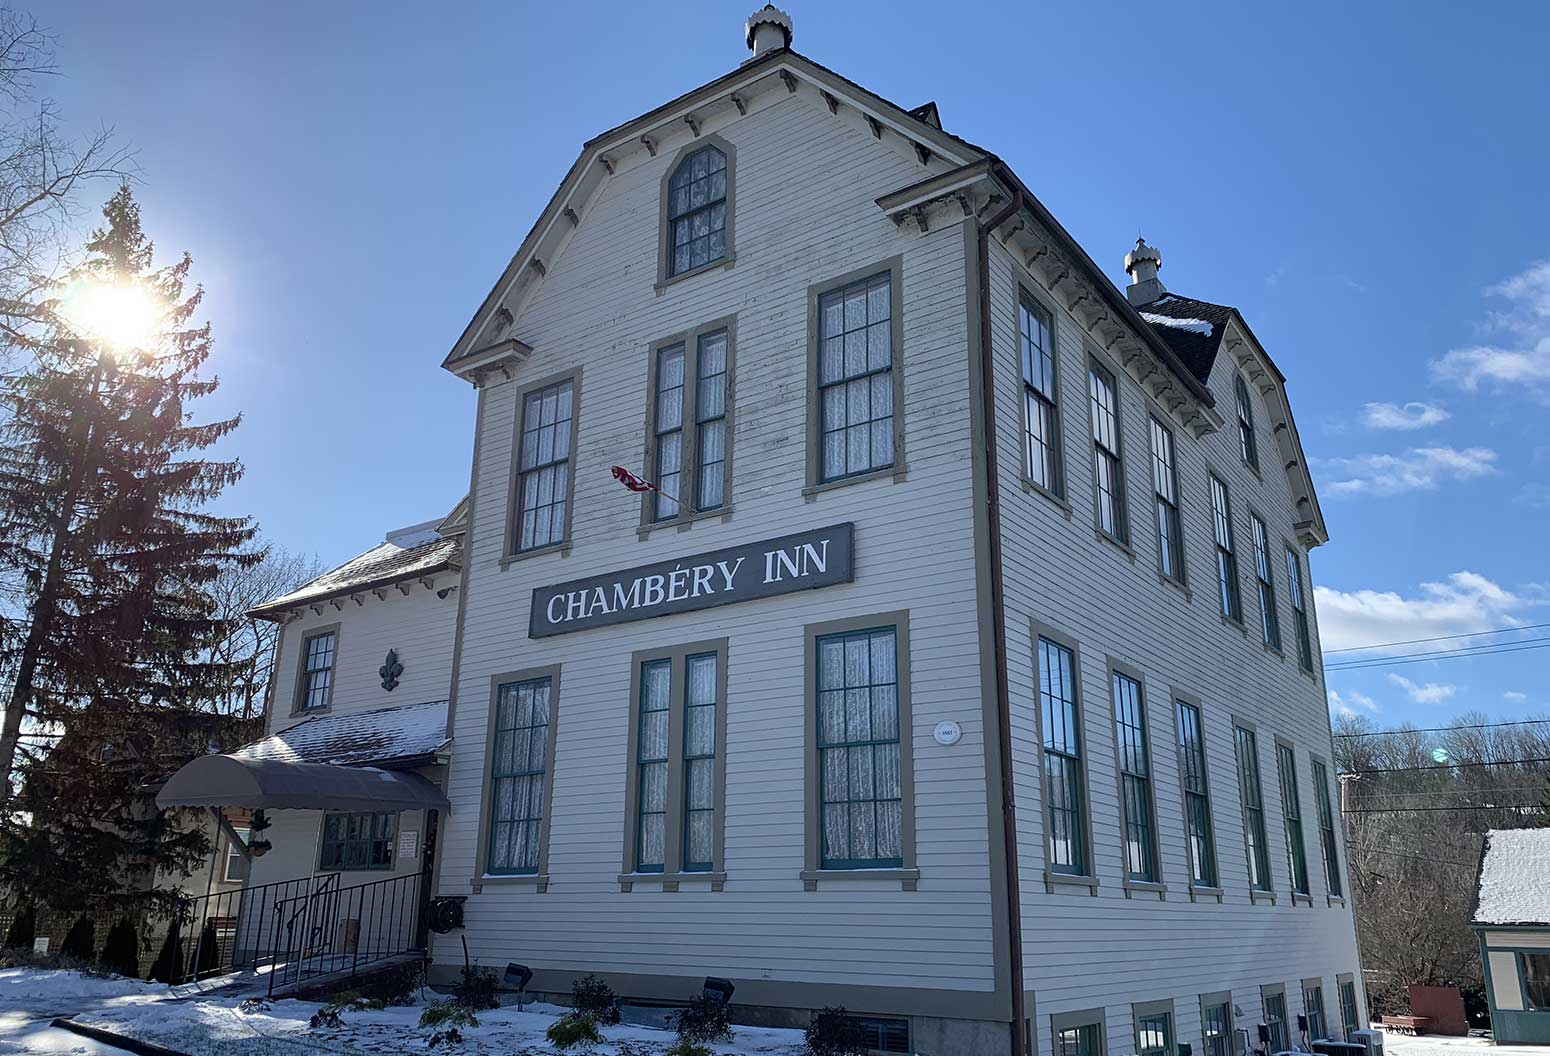 The Chambery Inn - Lodging in the Berkshires